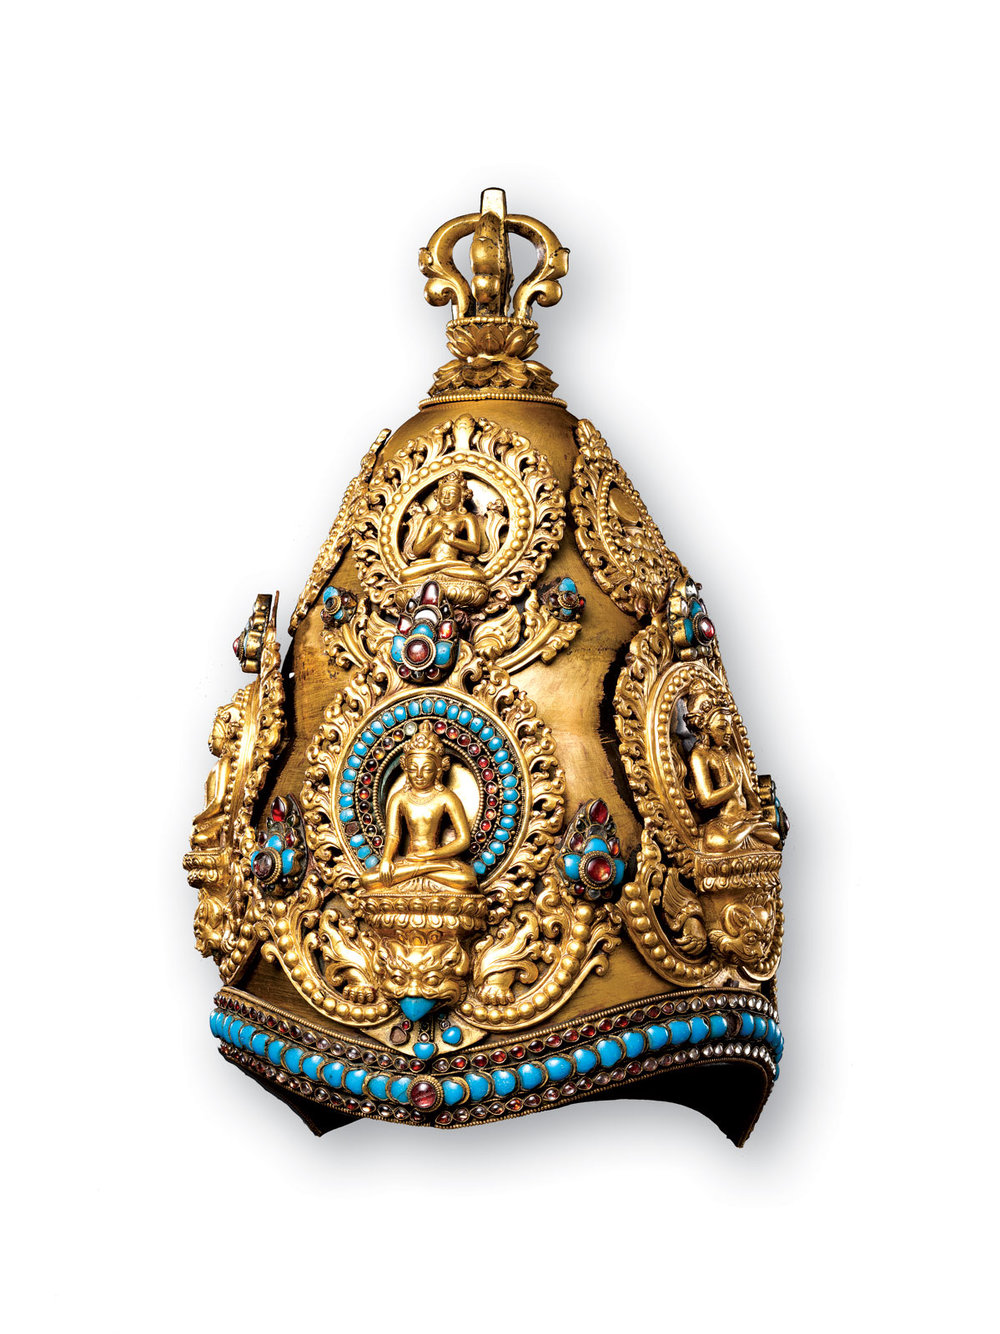 ROYAL CRESTS & VAJRA MASTERS: VAJRACARYA PRIEST'S CROWN of copper, gold, turquoise, semiprecious stones, silver foil, Nepalese, 34.3 x 21.7 x 23.0 centimeters, circa fifteenth/sixteenth century.  Rogers Fund, 1948. Collection of Metropolitan Museum of Art.